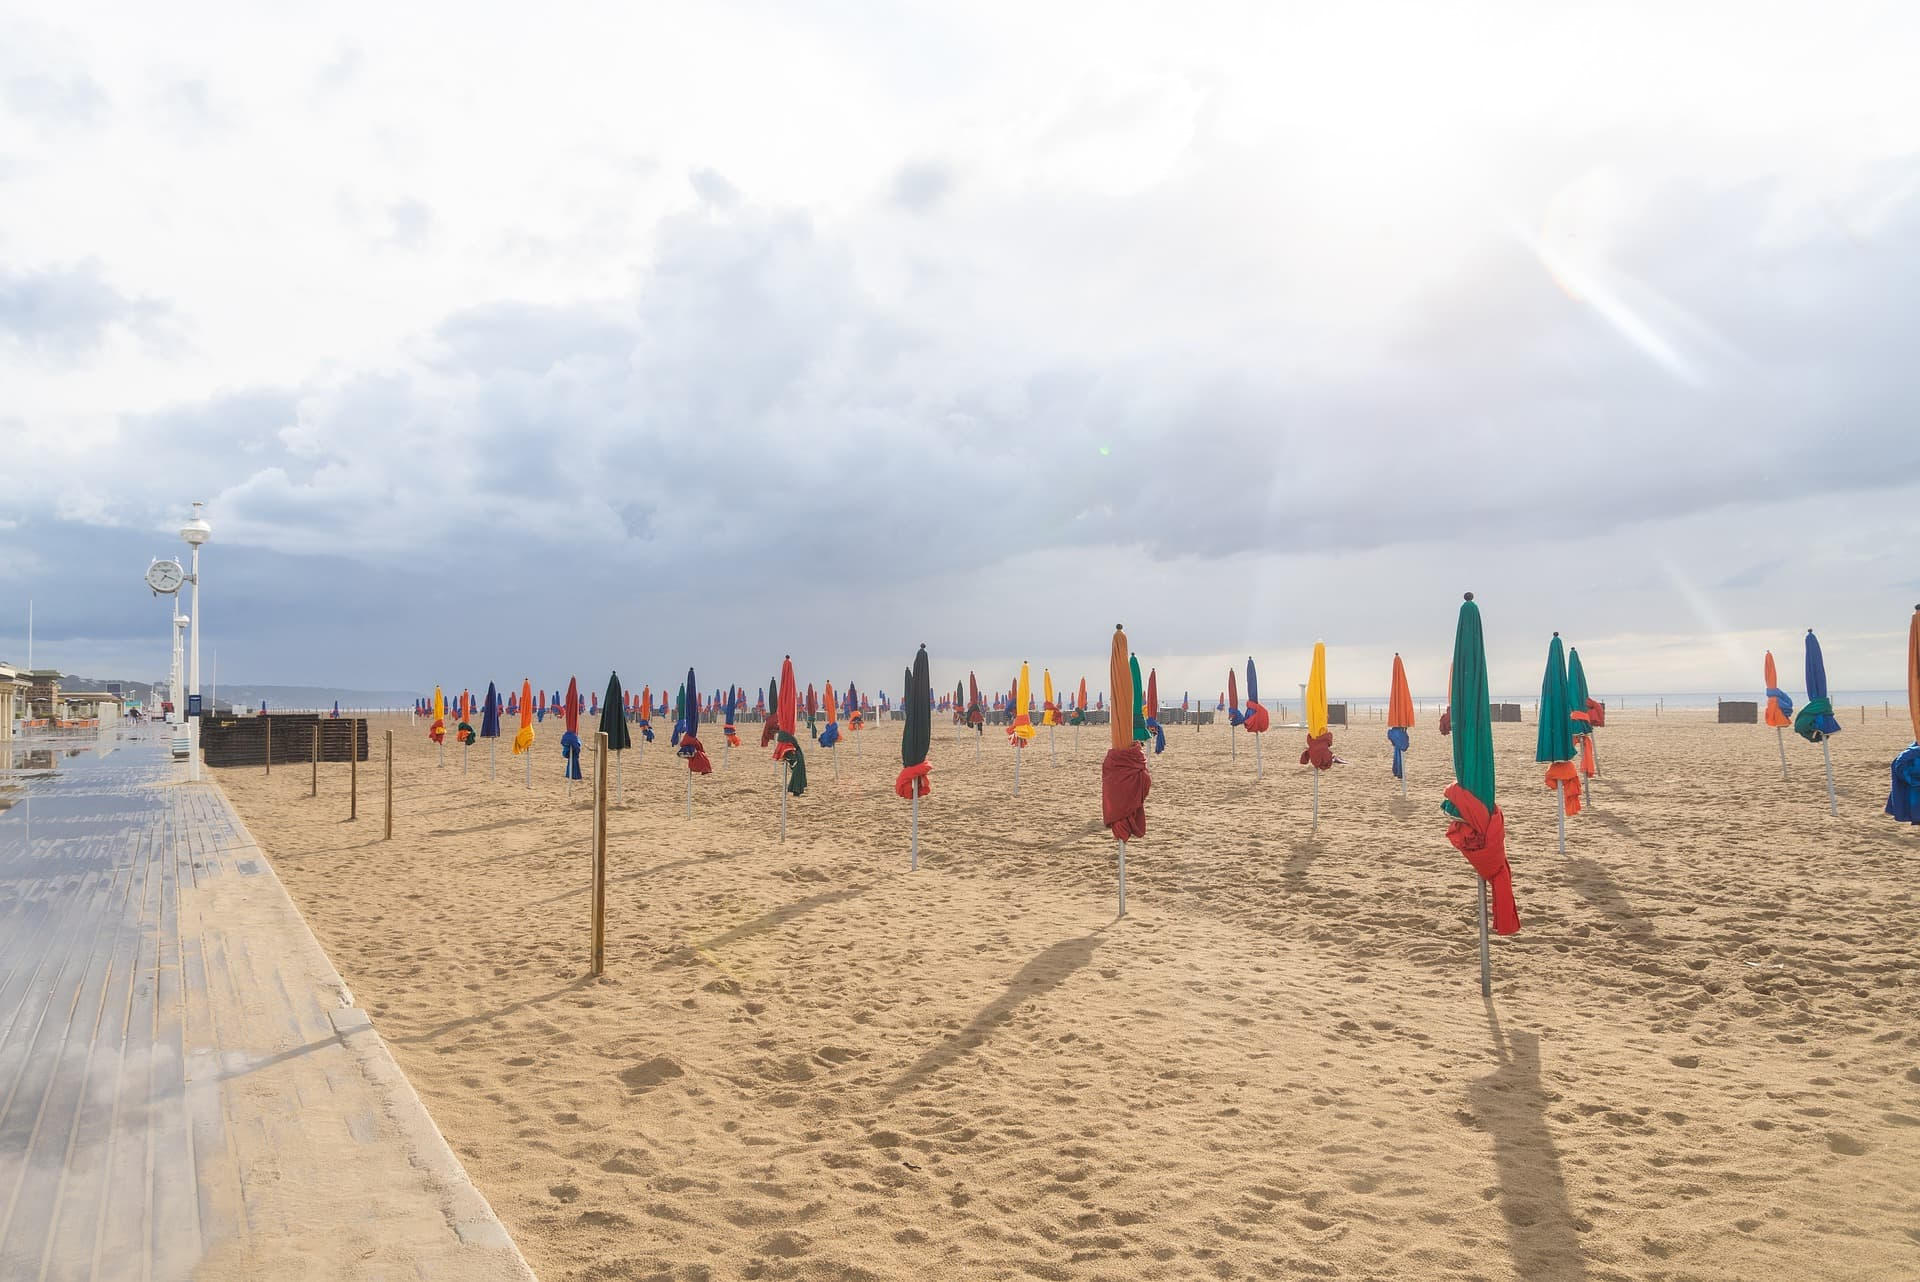 DAY 4 - Deauville